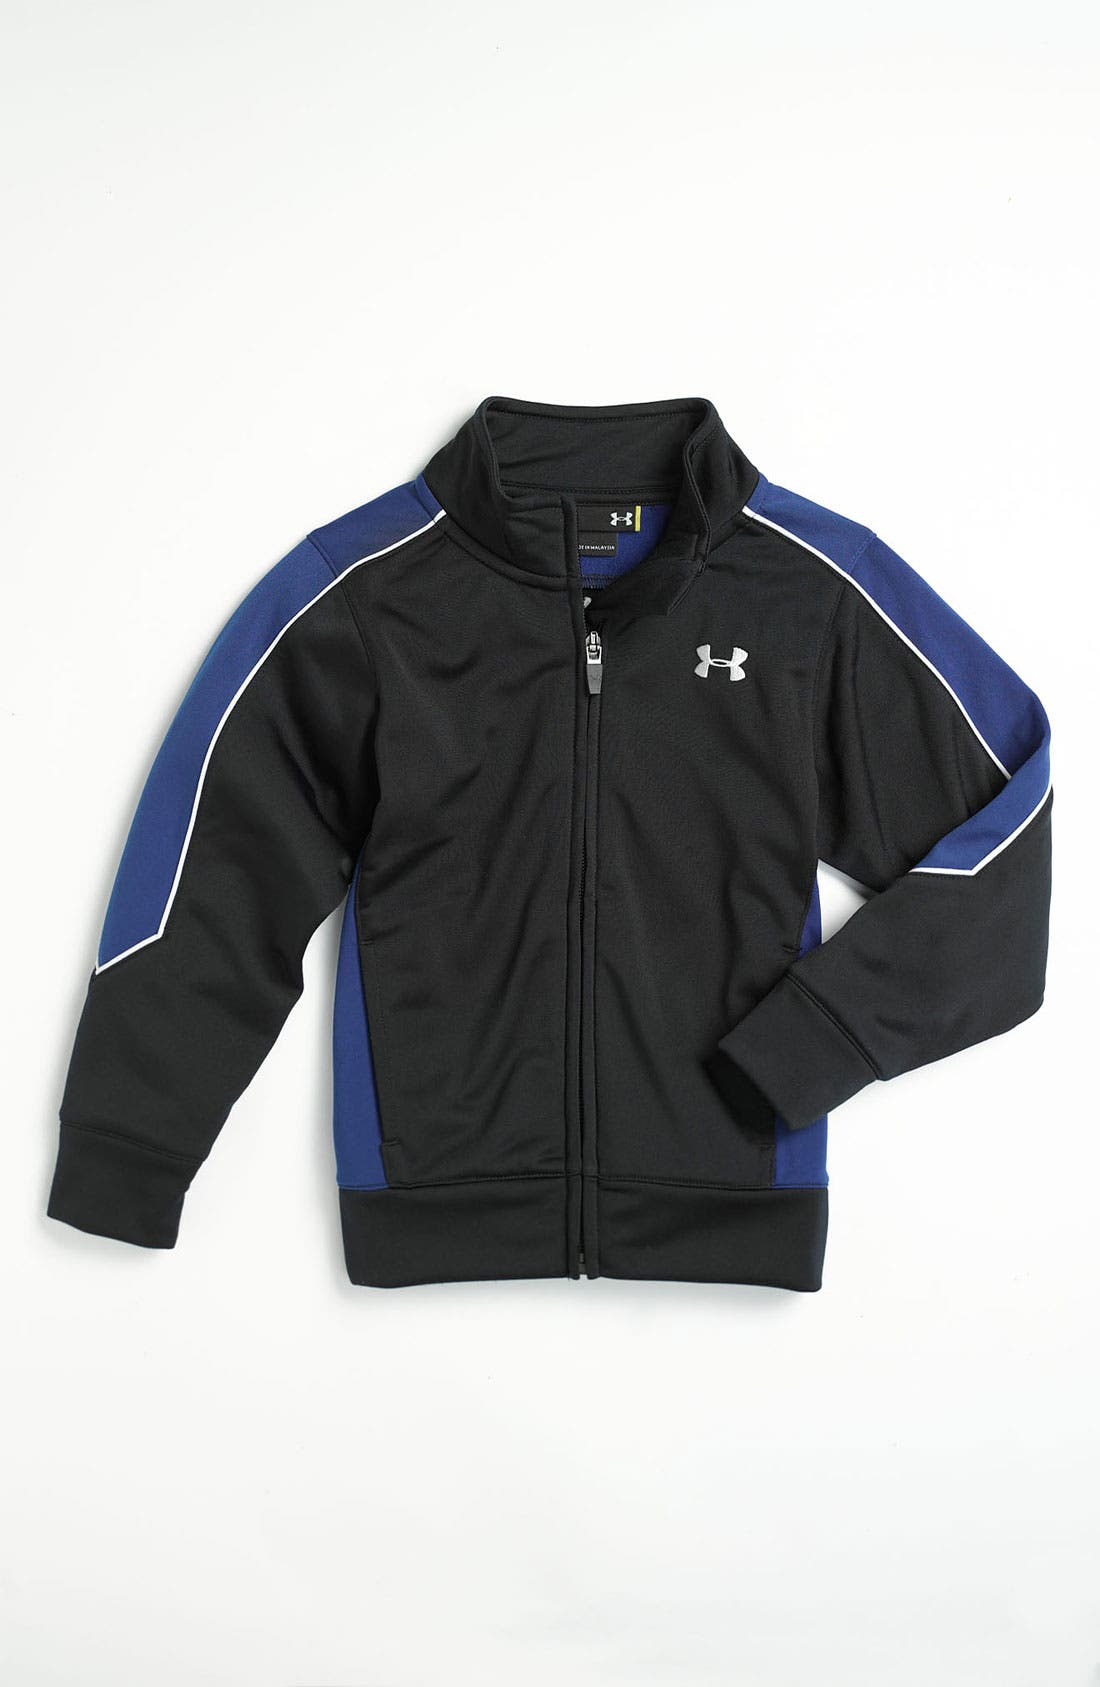 Alternate Image 1 Selected - Under Armour Jacket (Toddler)